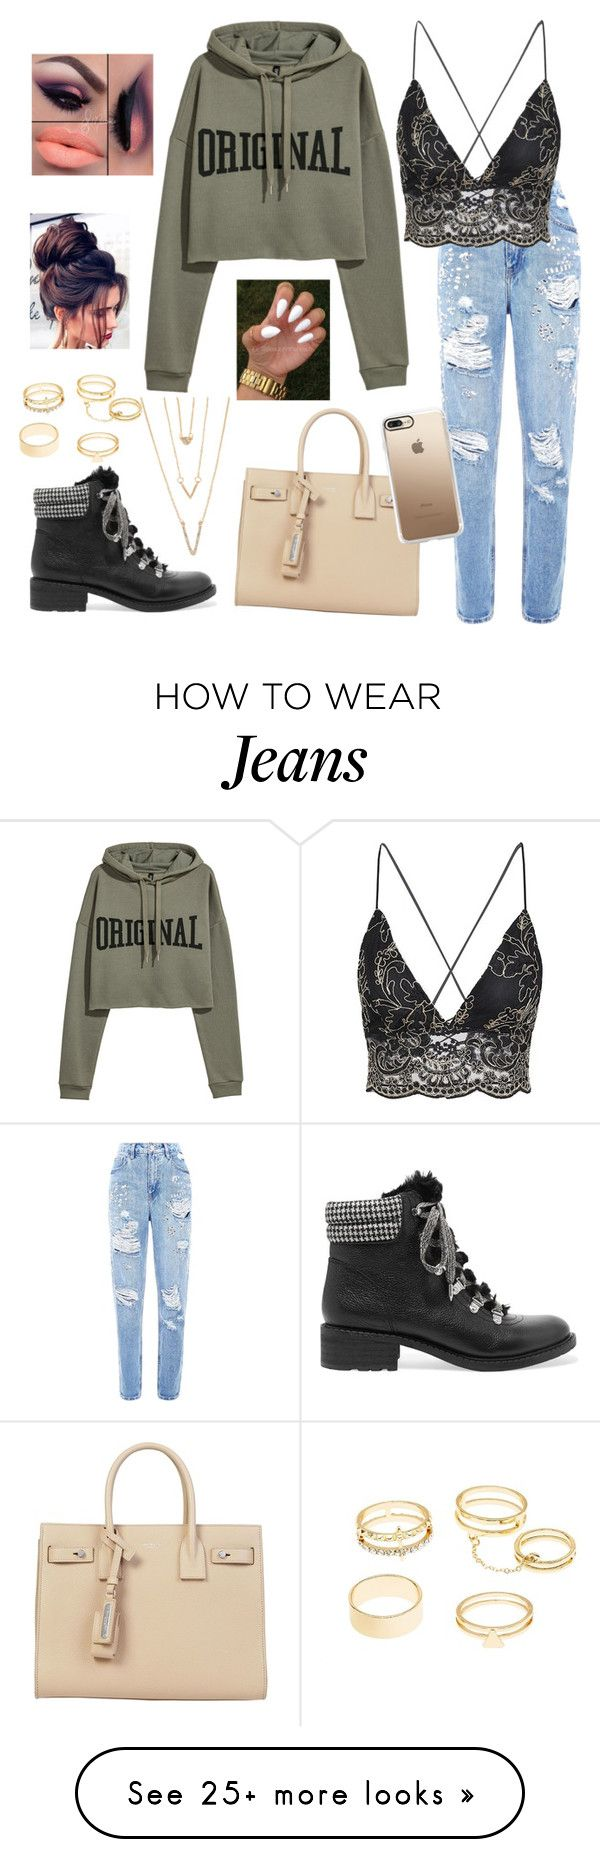 """Mom Jeans"" by zi-and-astro on Polyvore featuring Yves Saint Laurent, Sam Edelman, Charlotte Russe, SHAN and Casetify"